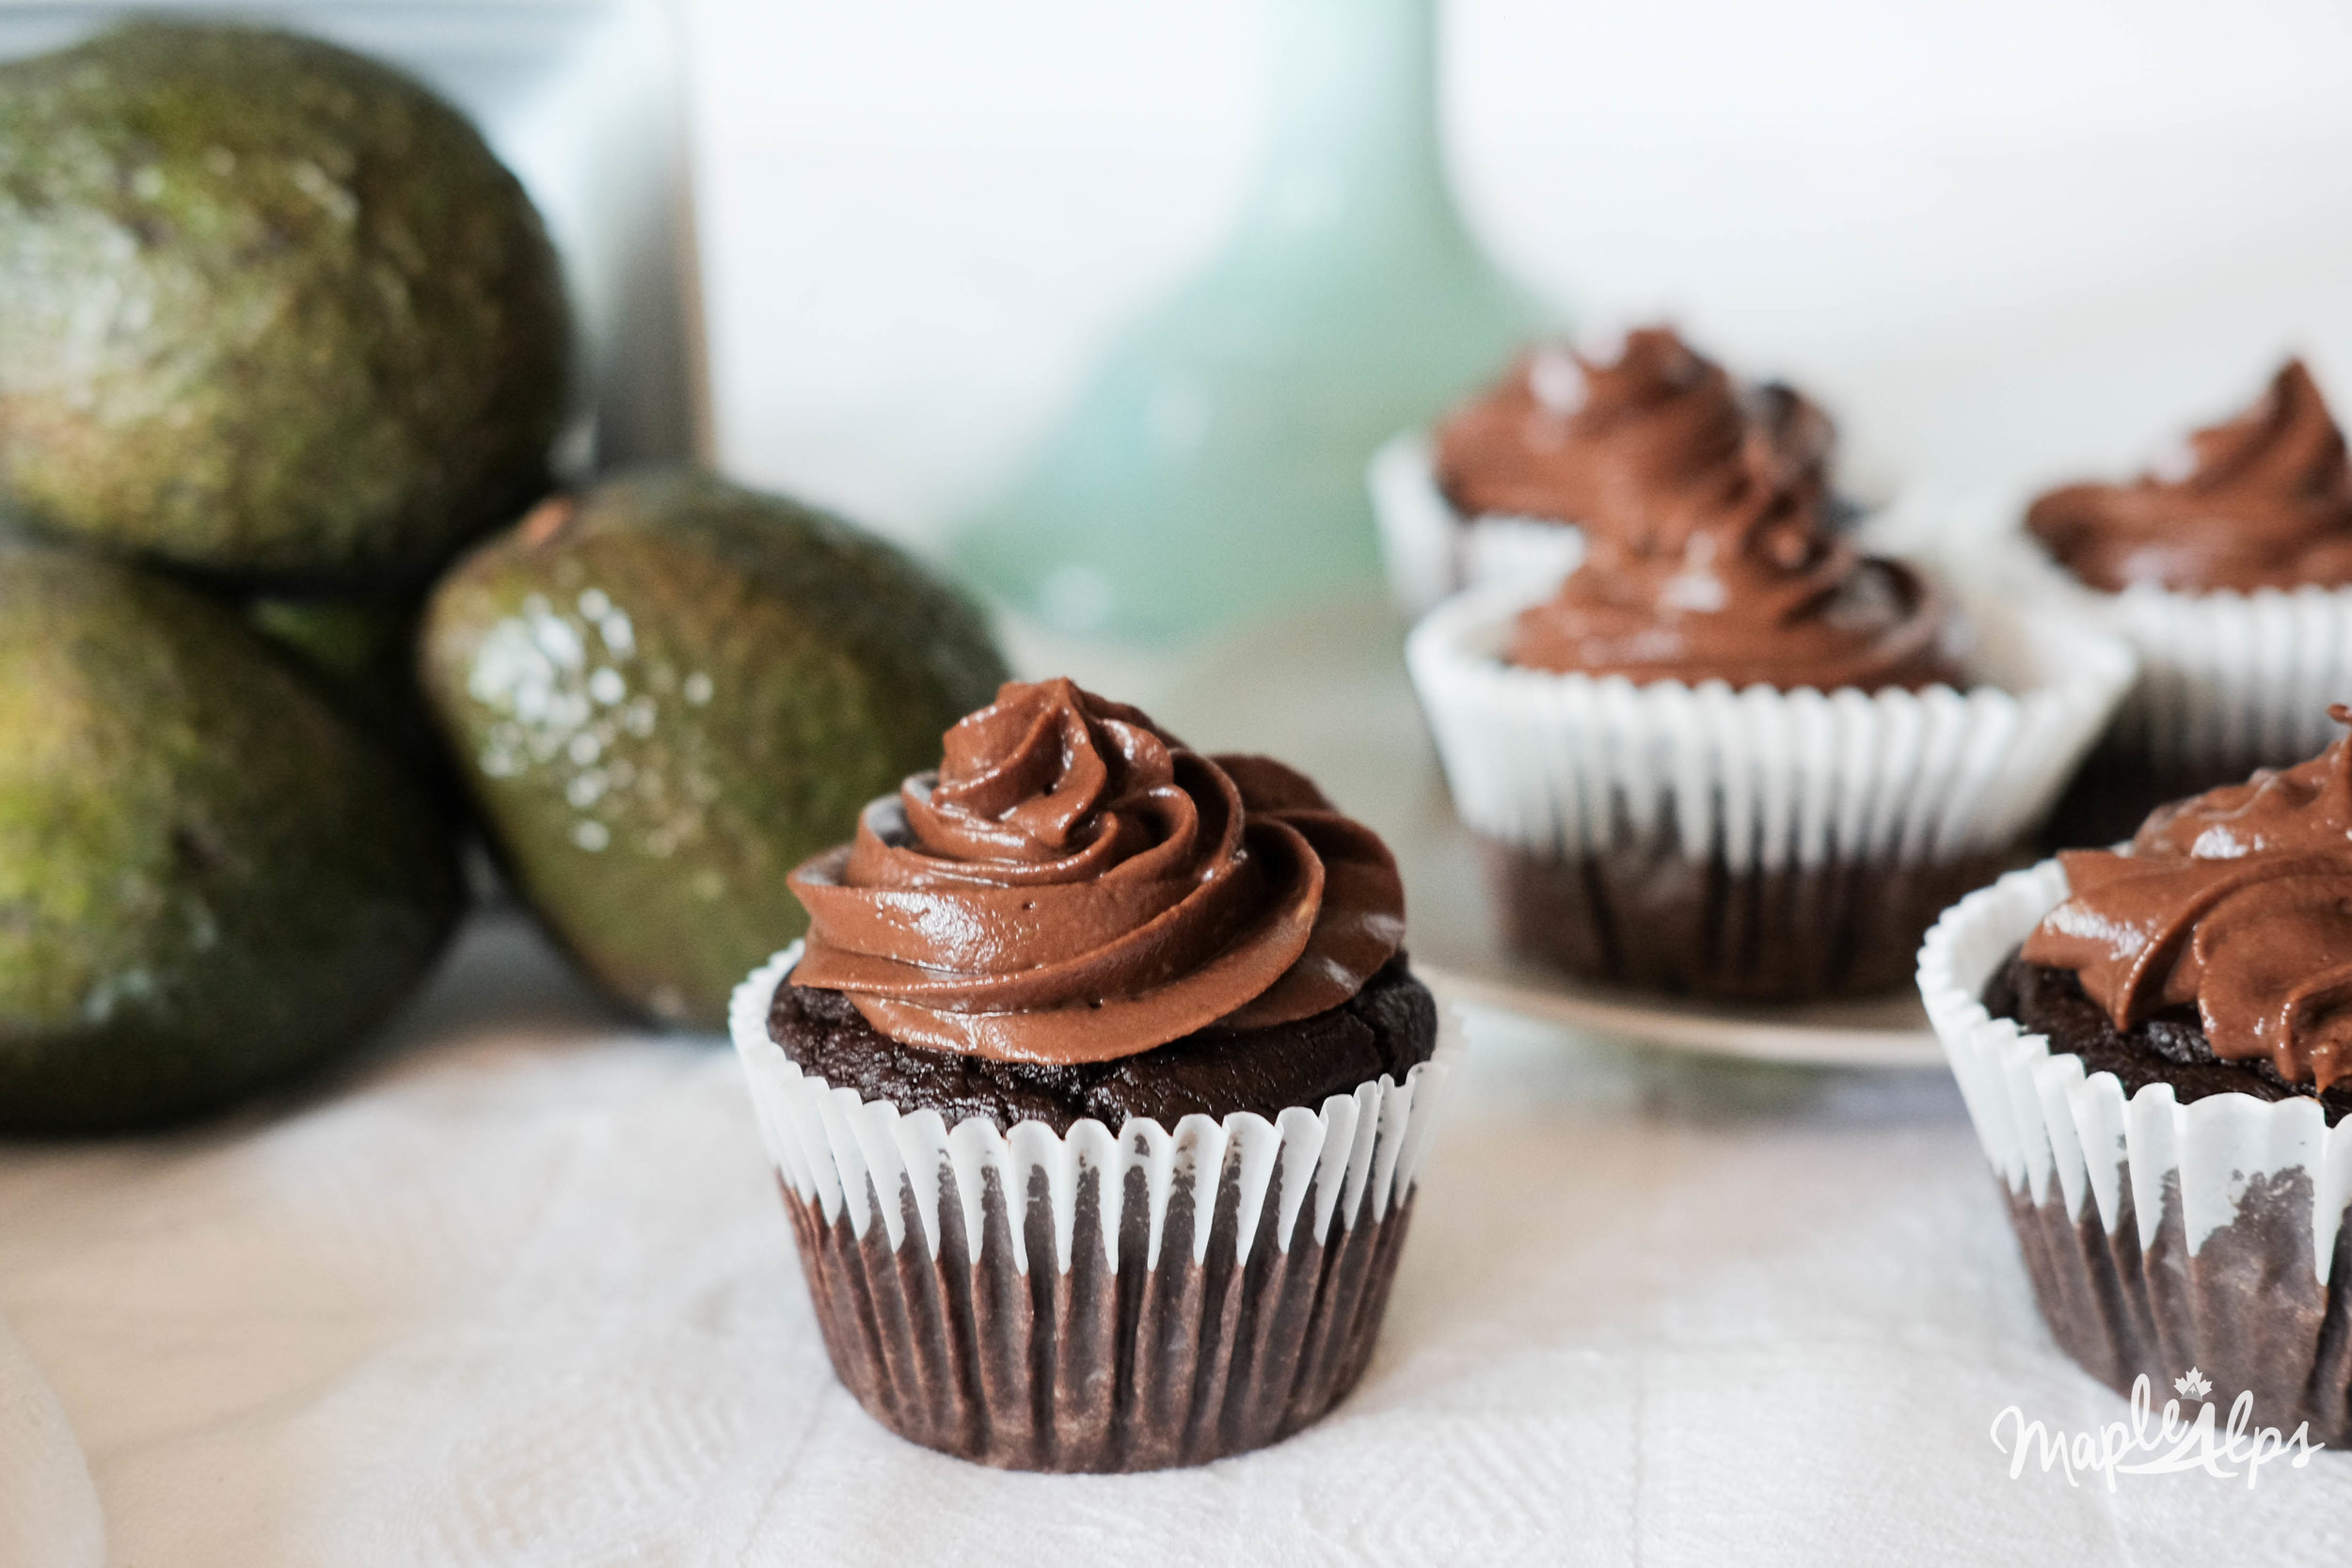 Chocolate Beet Cupcakes with Avocado Frosting (vegan and gluten free) | www.maplealps.com